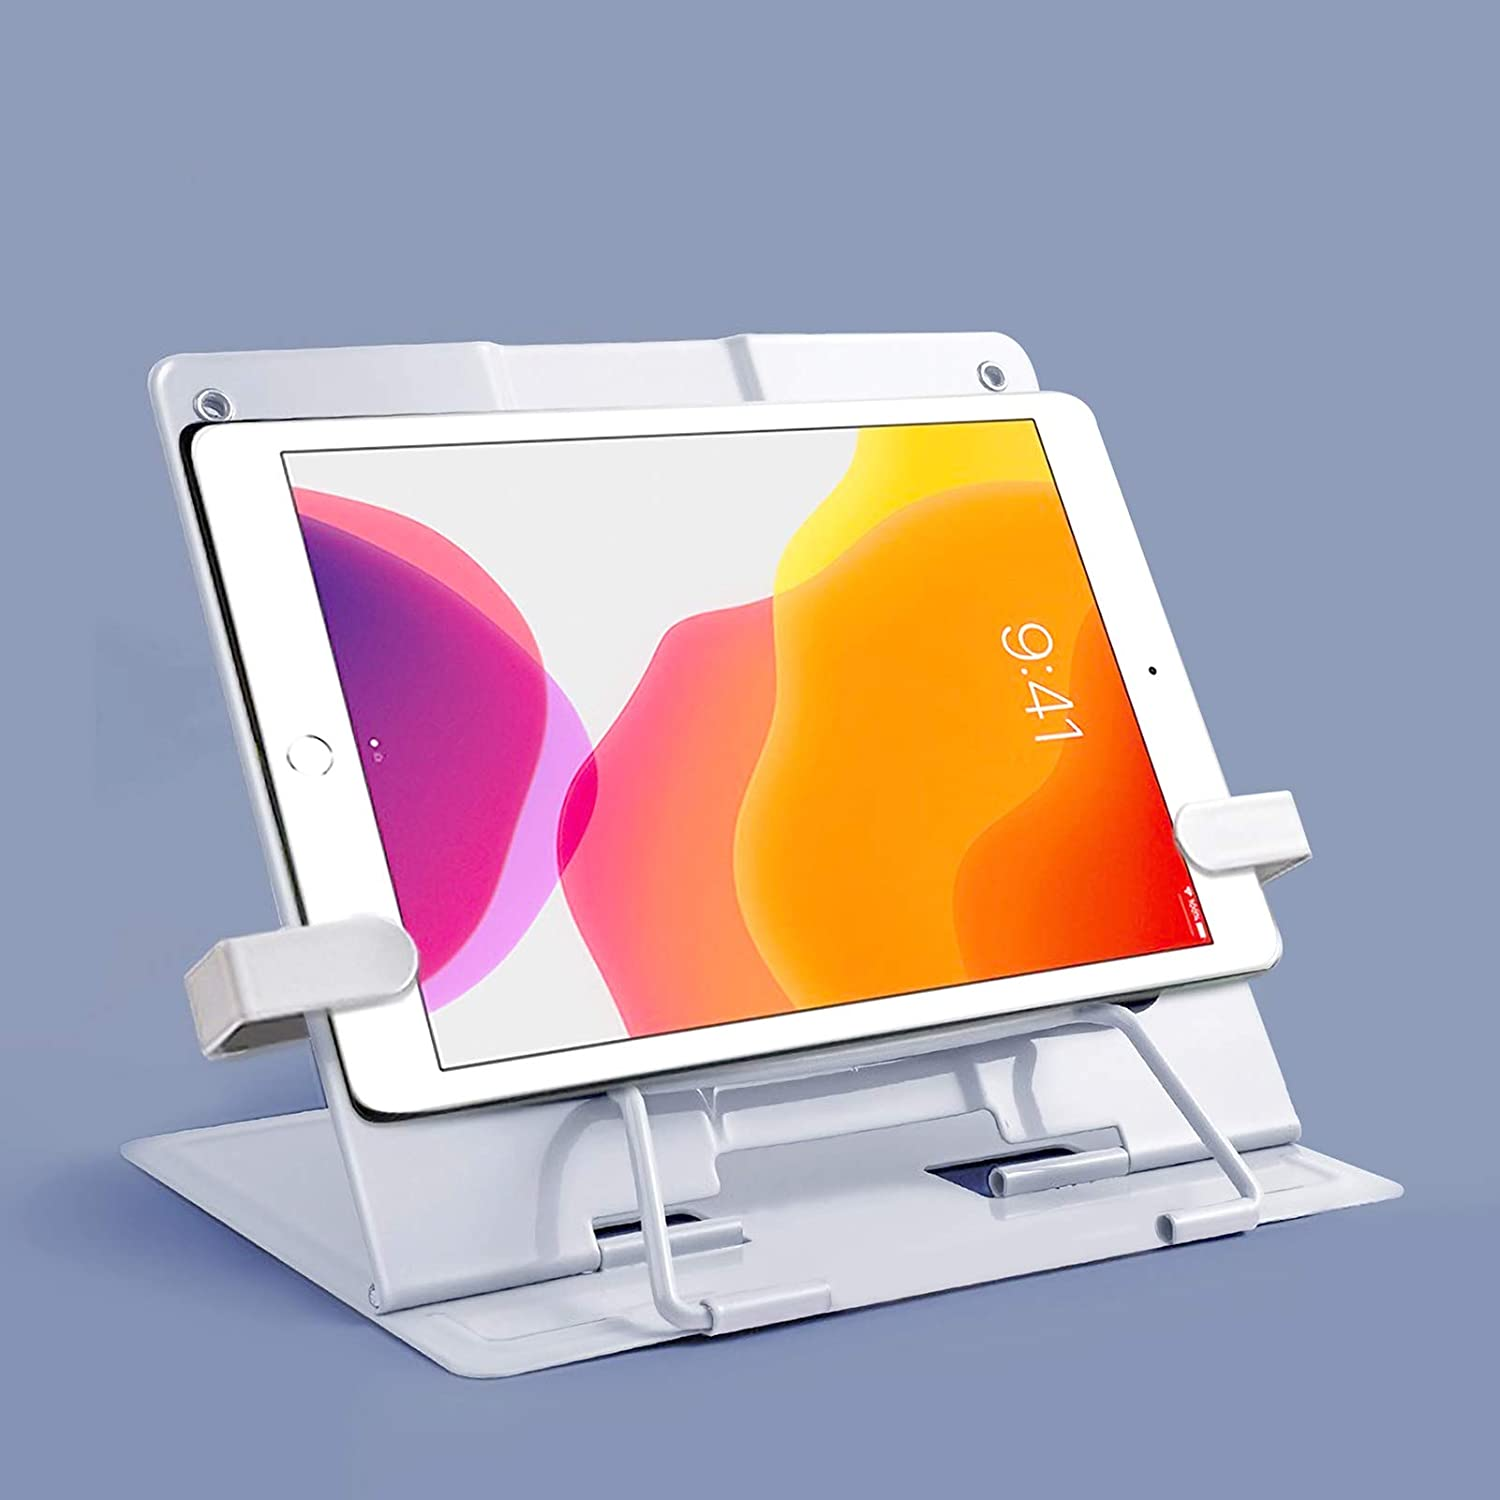 GeLive Upgrade Metal Book Holder Page Clip Eye Protection Reading Stand Adjustable Recipe Stand Foldable Cookbook Rest Reading Hands Free Tablet iPad Calendar Catalog Recipe Holder White